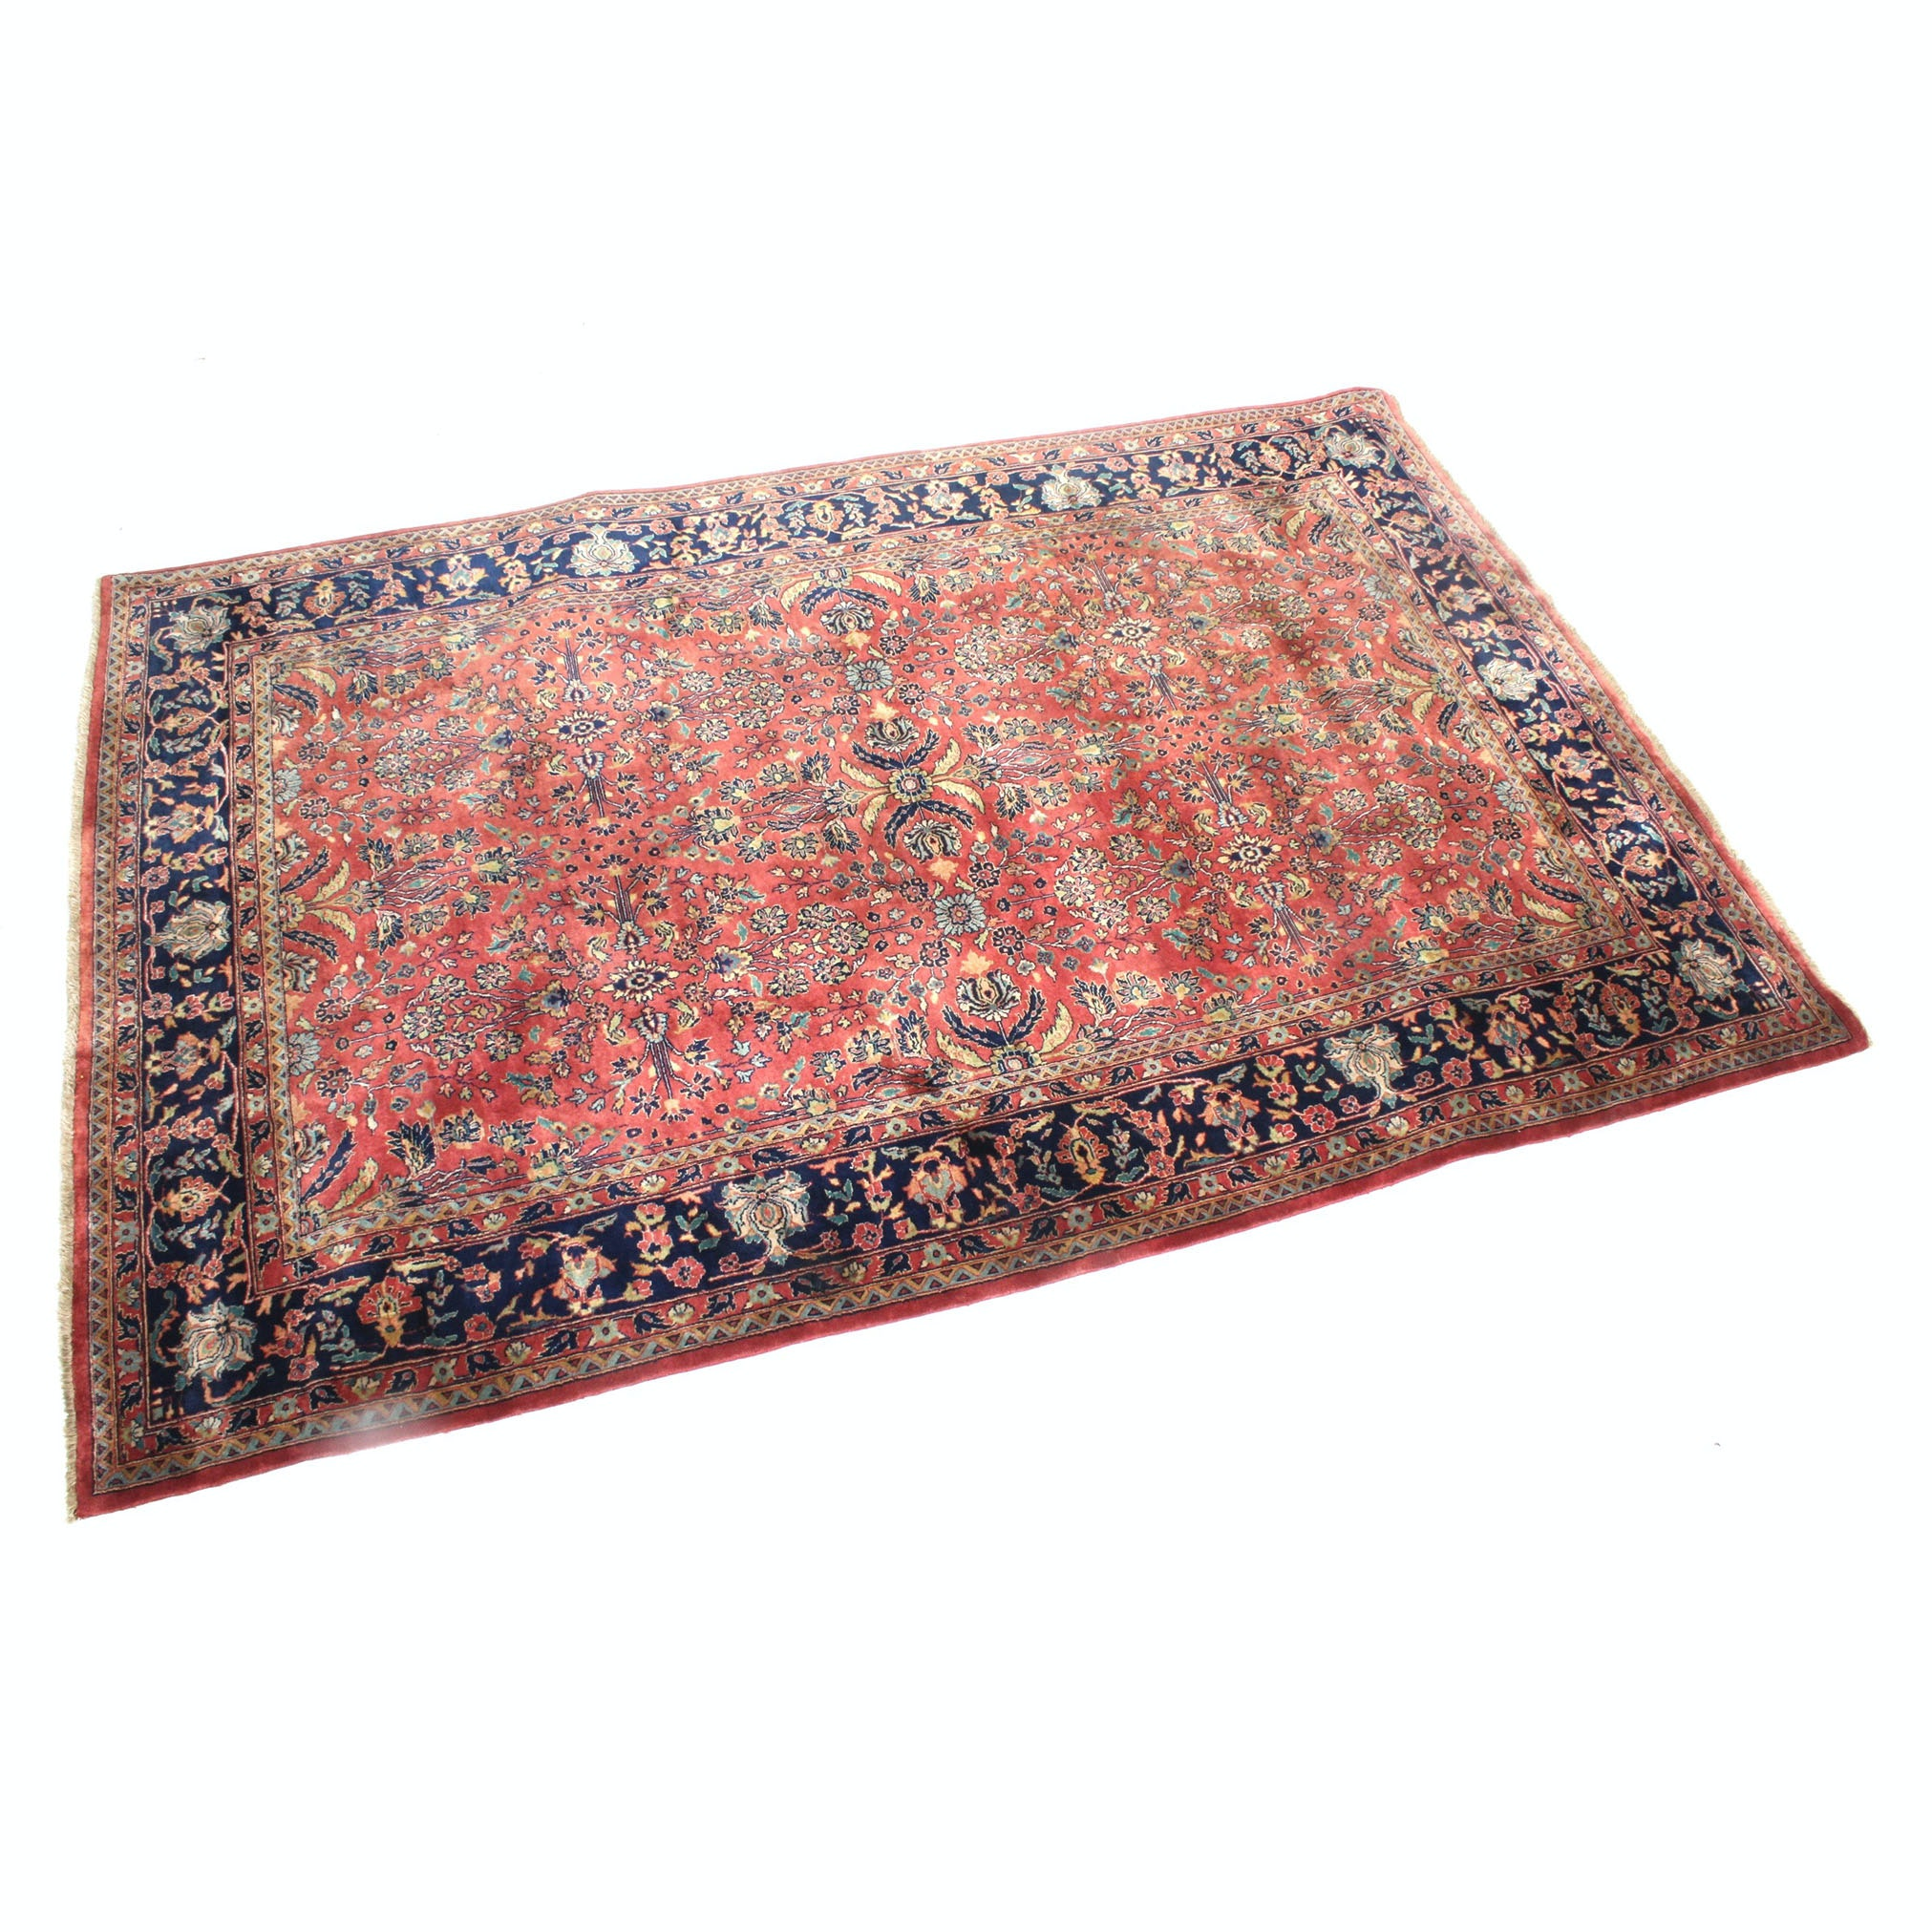 Hand-Knotted Persian Sarouk Room Size Rug